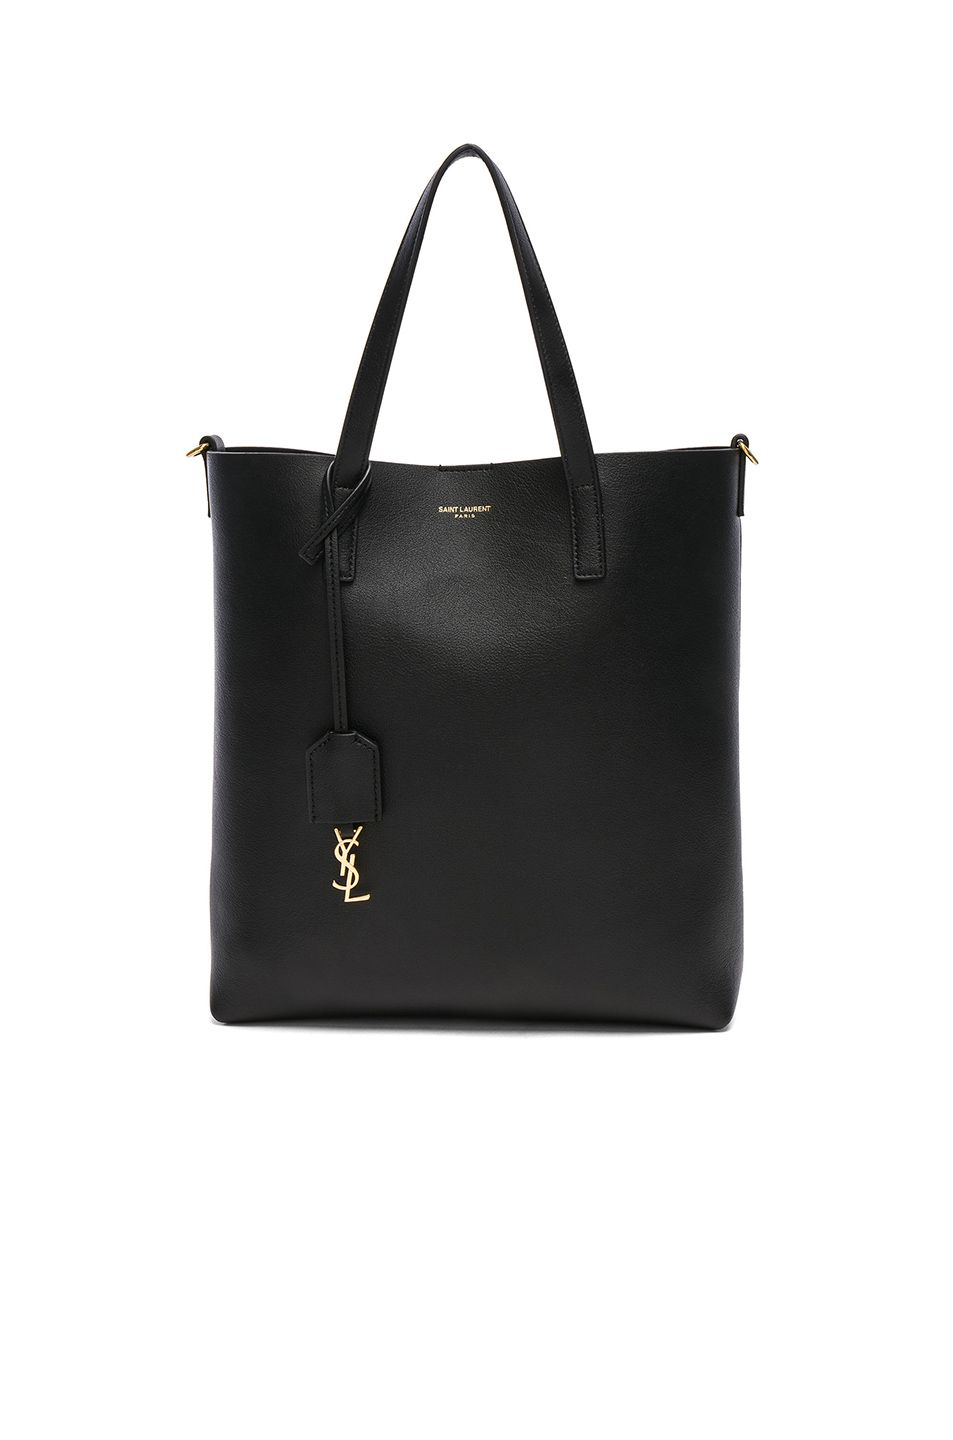 Geniue Stockist Cheap Online The Best Store To Get Saint Laurent Toy North South Tote Bag in ExLvdagh